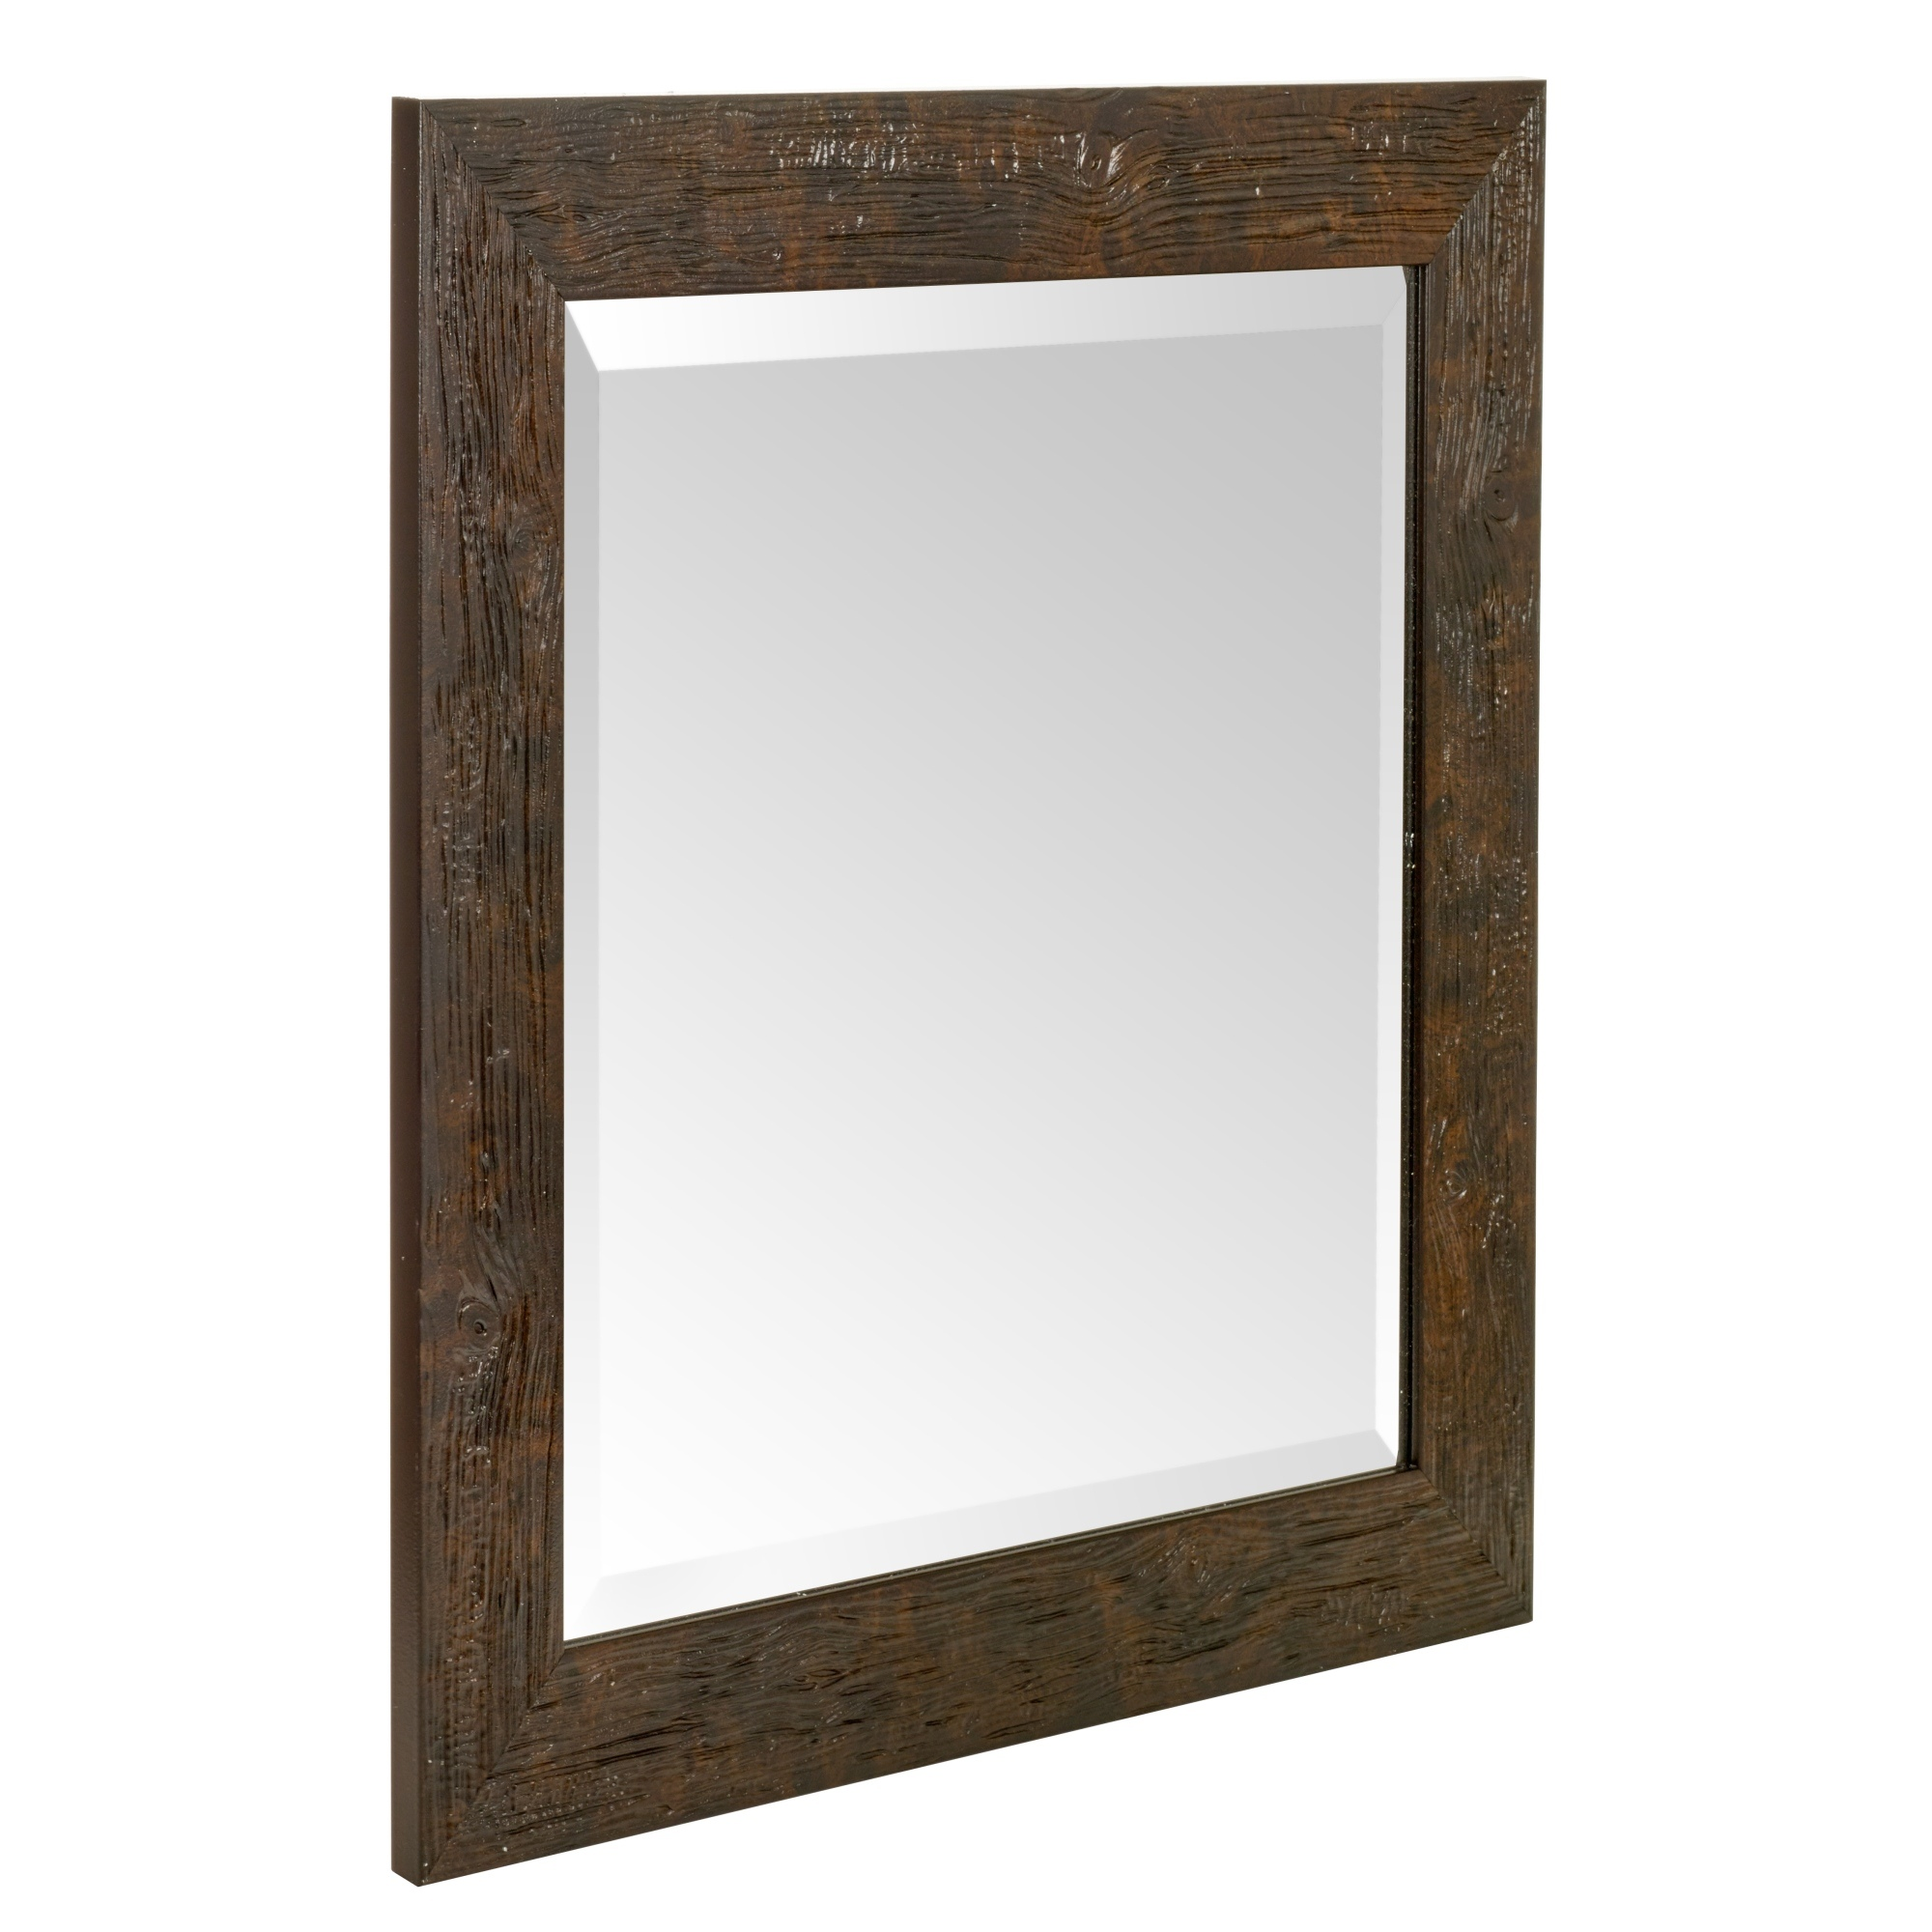 large wall glass square mirror 50 x 50 cm mountable wood